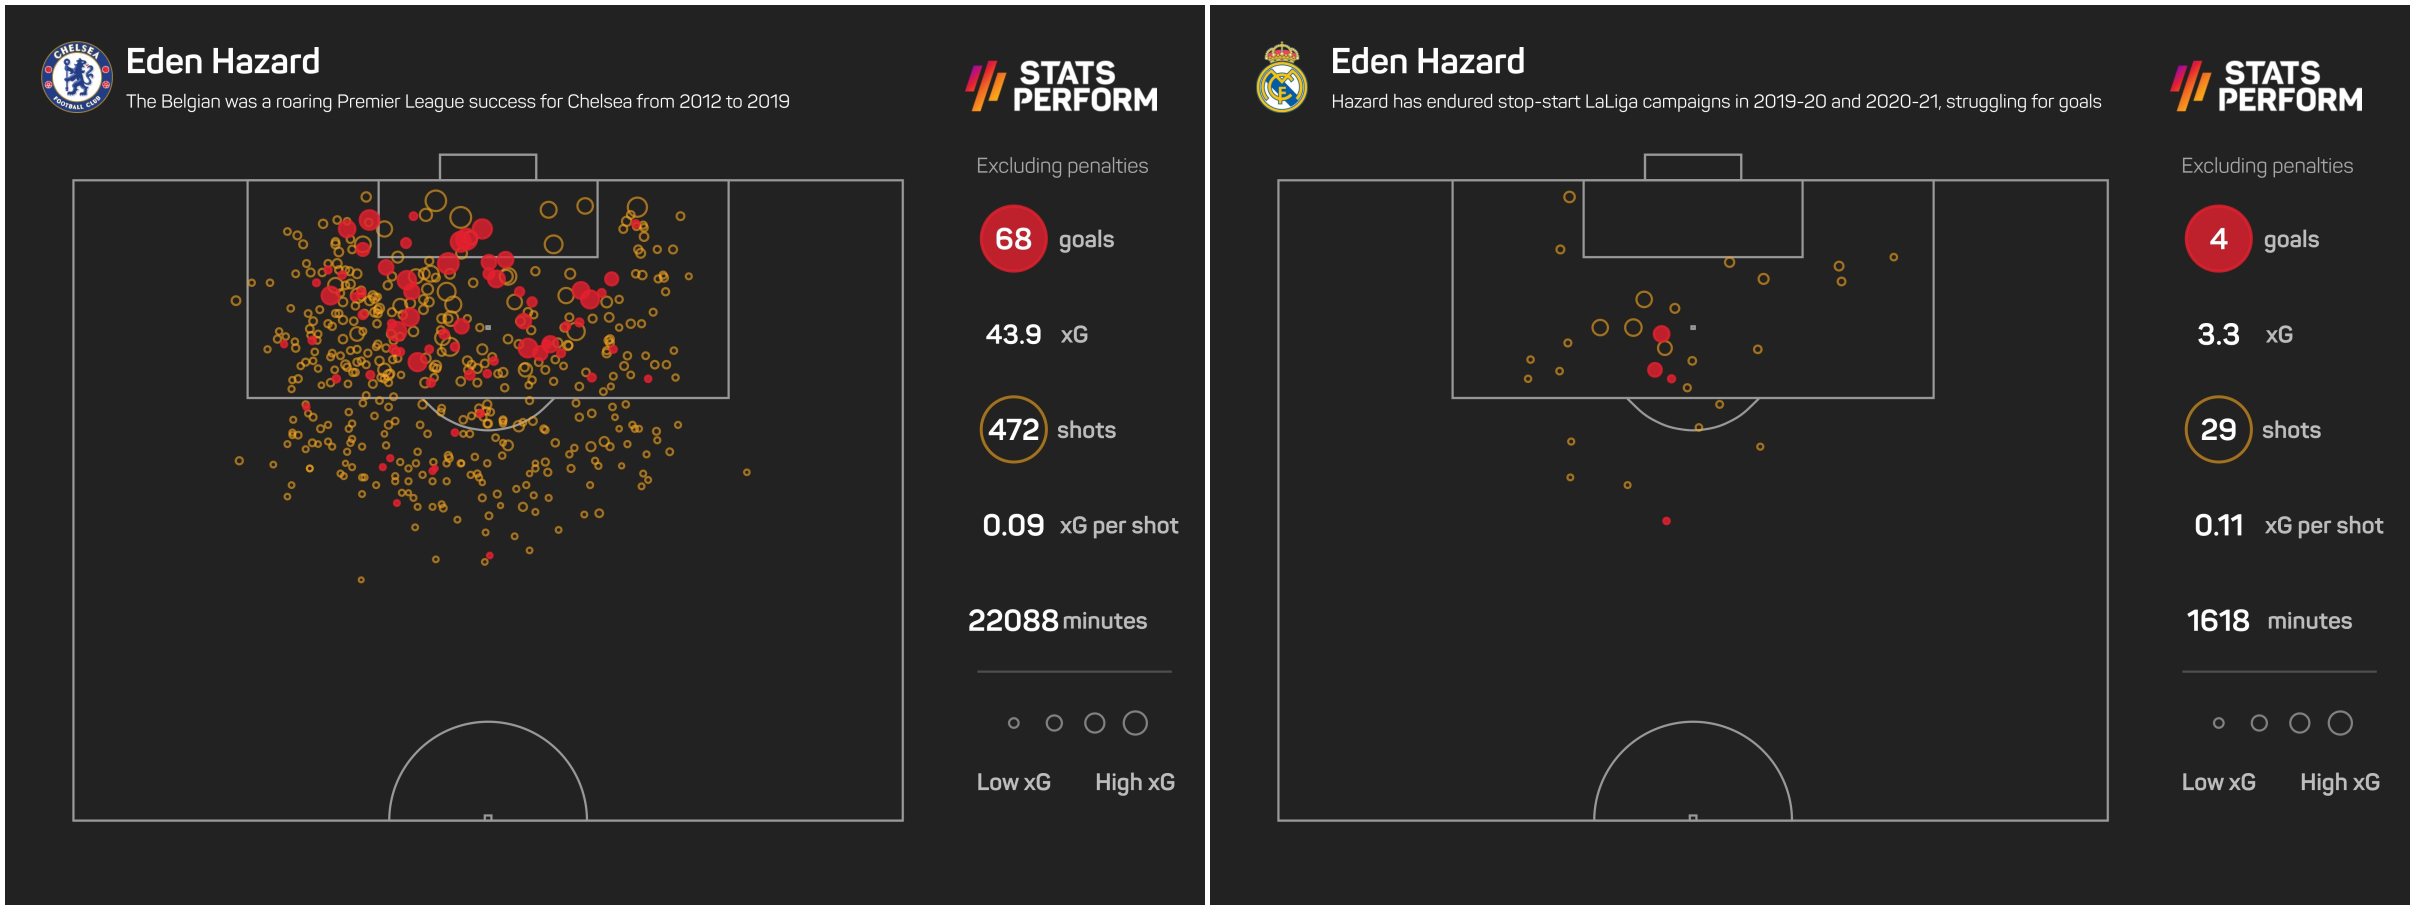 Eden Hazard xG with Chelsea and Real Madrid